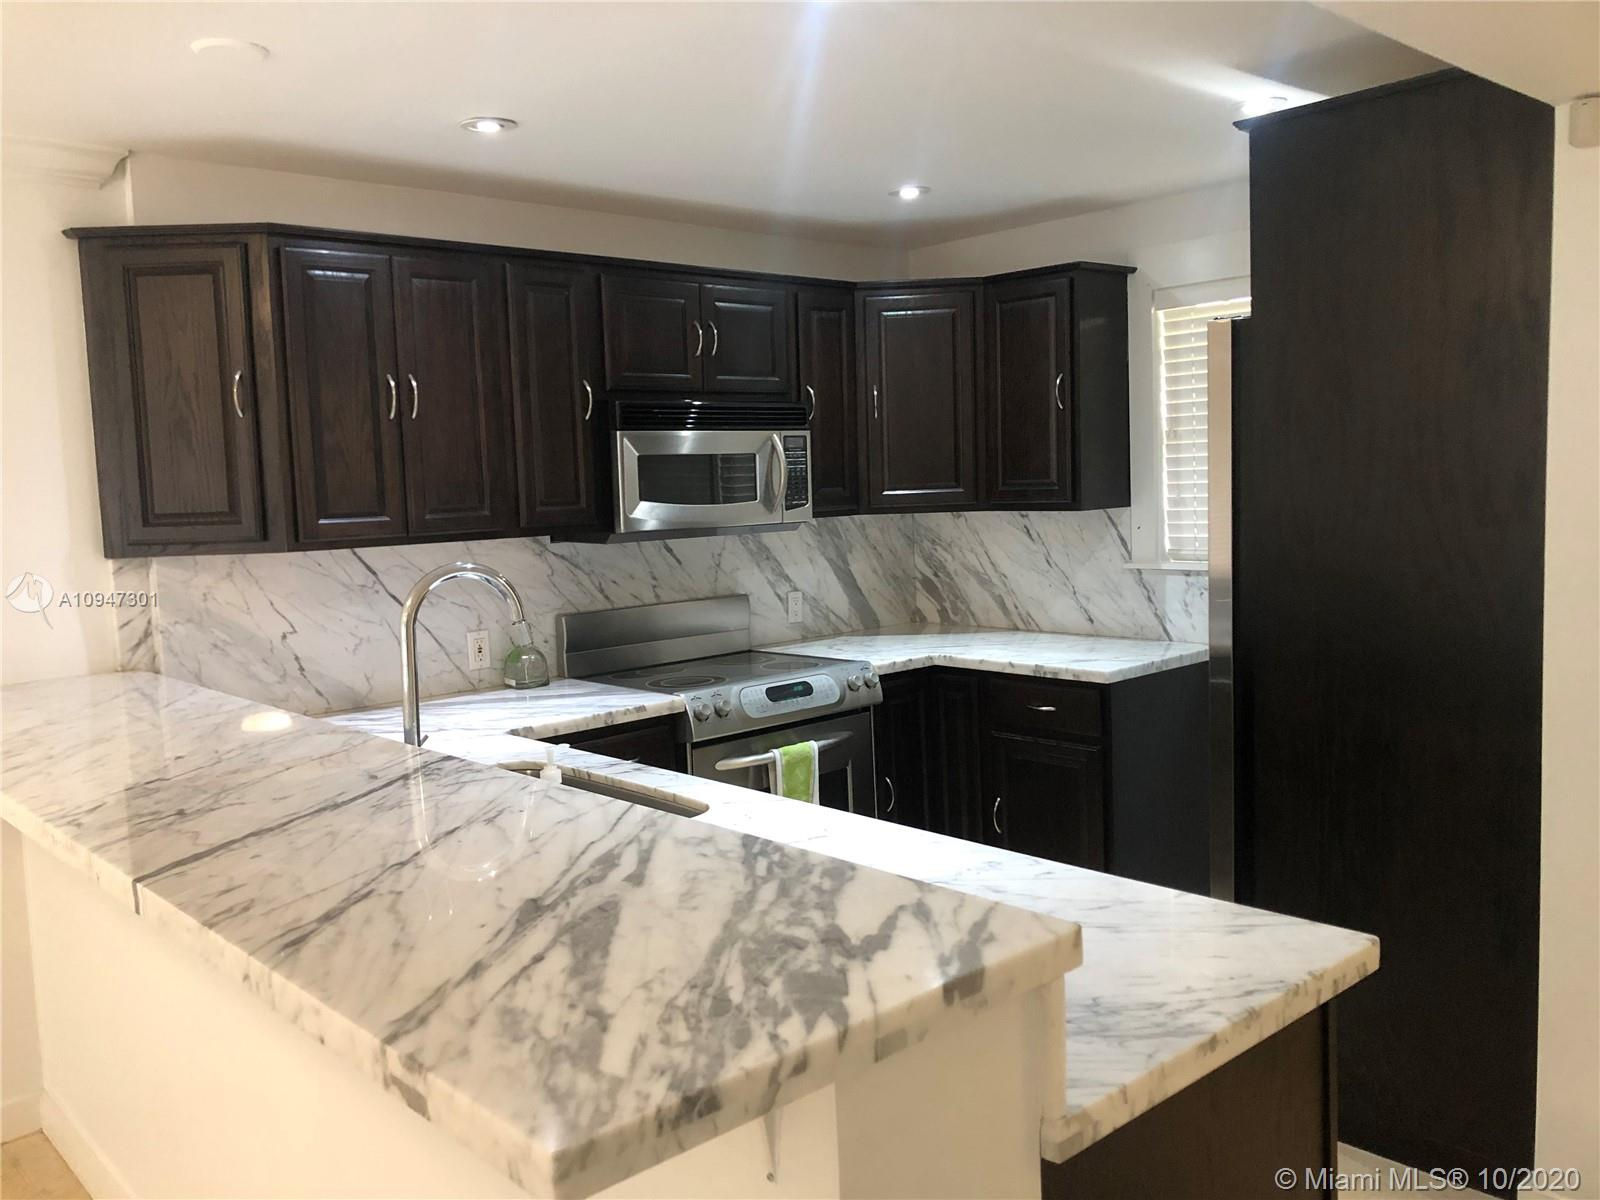 100 EDGEWATER DR # 114, Coral Gables, Florida 33133, 1 Bedroom Bedrooms, ,2 BathroomsBathrooms,Residential,For Sale,100 EDGEWATER DR # 114,A10947301